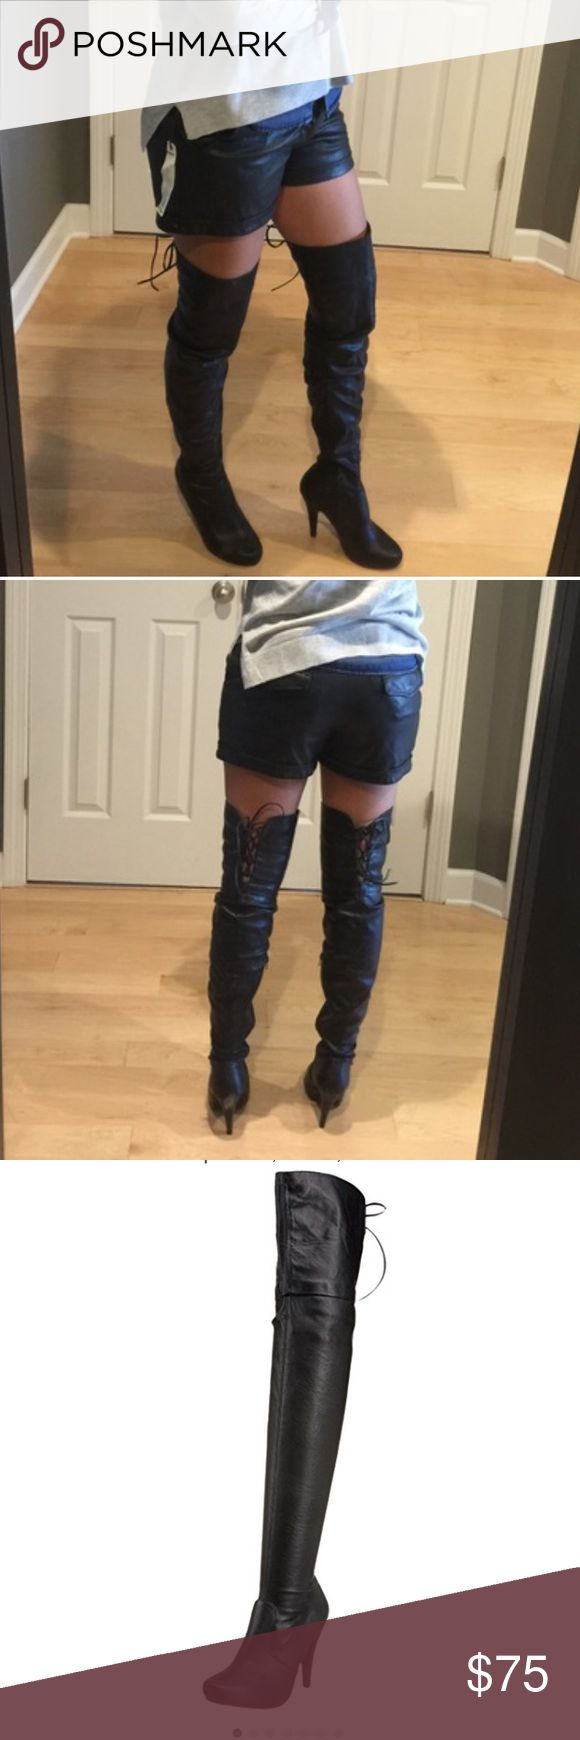 Steve Madden thigh High leather boots Steve Madden Ilusionn Thigh High Leather boots, EUC, black, lace on the back of thigh for adjust, can be fold down for over the Knee, some scuffs on heels, size 9, fit like an 8.5. Steve Madden Shoes Over the Knee Boots